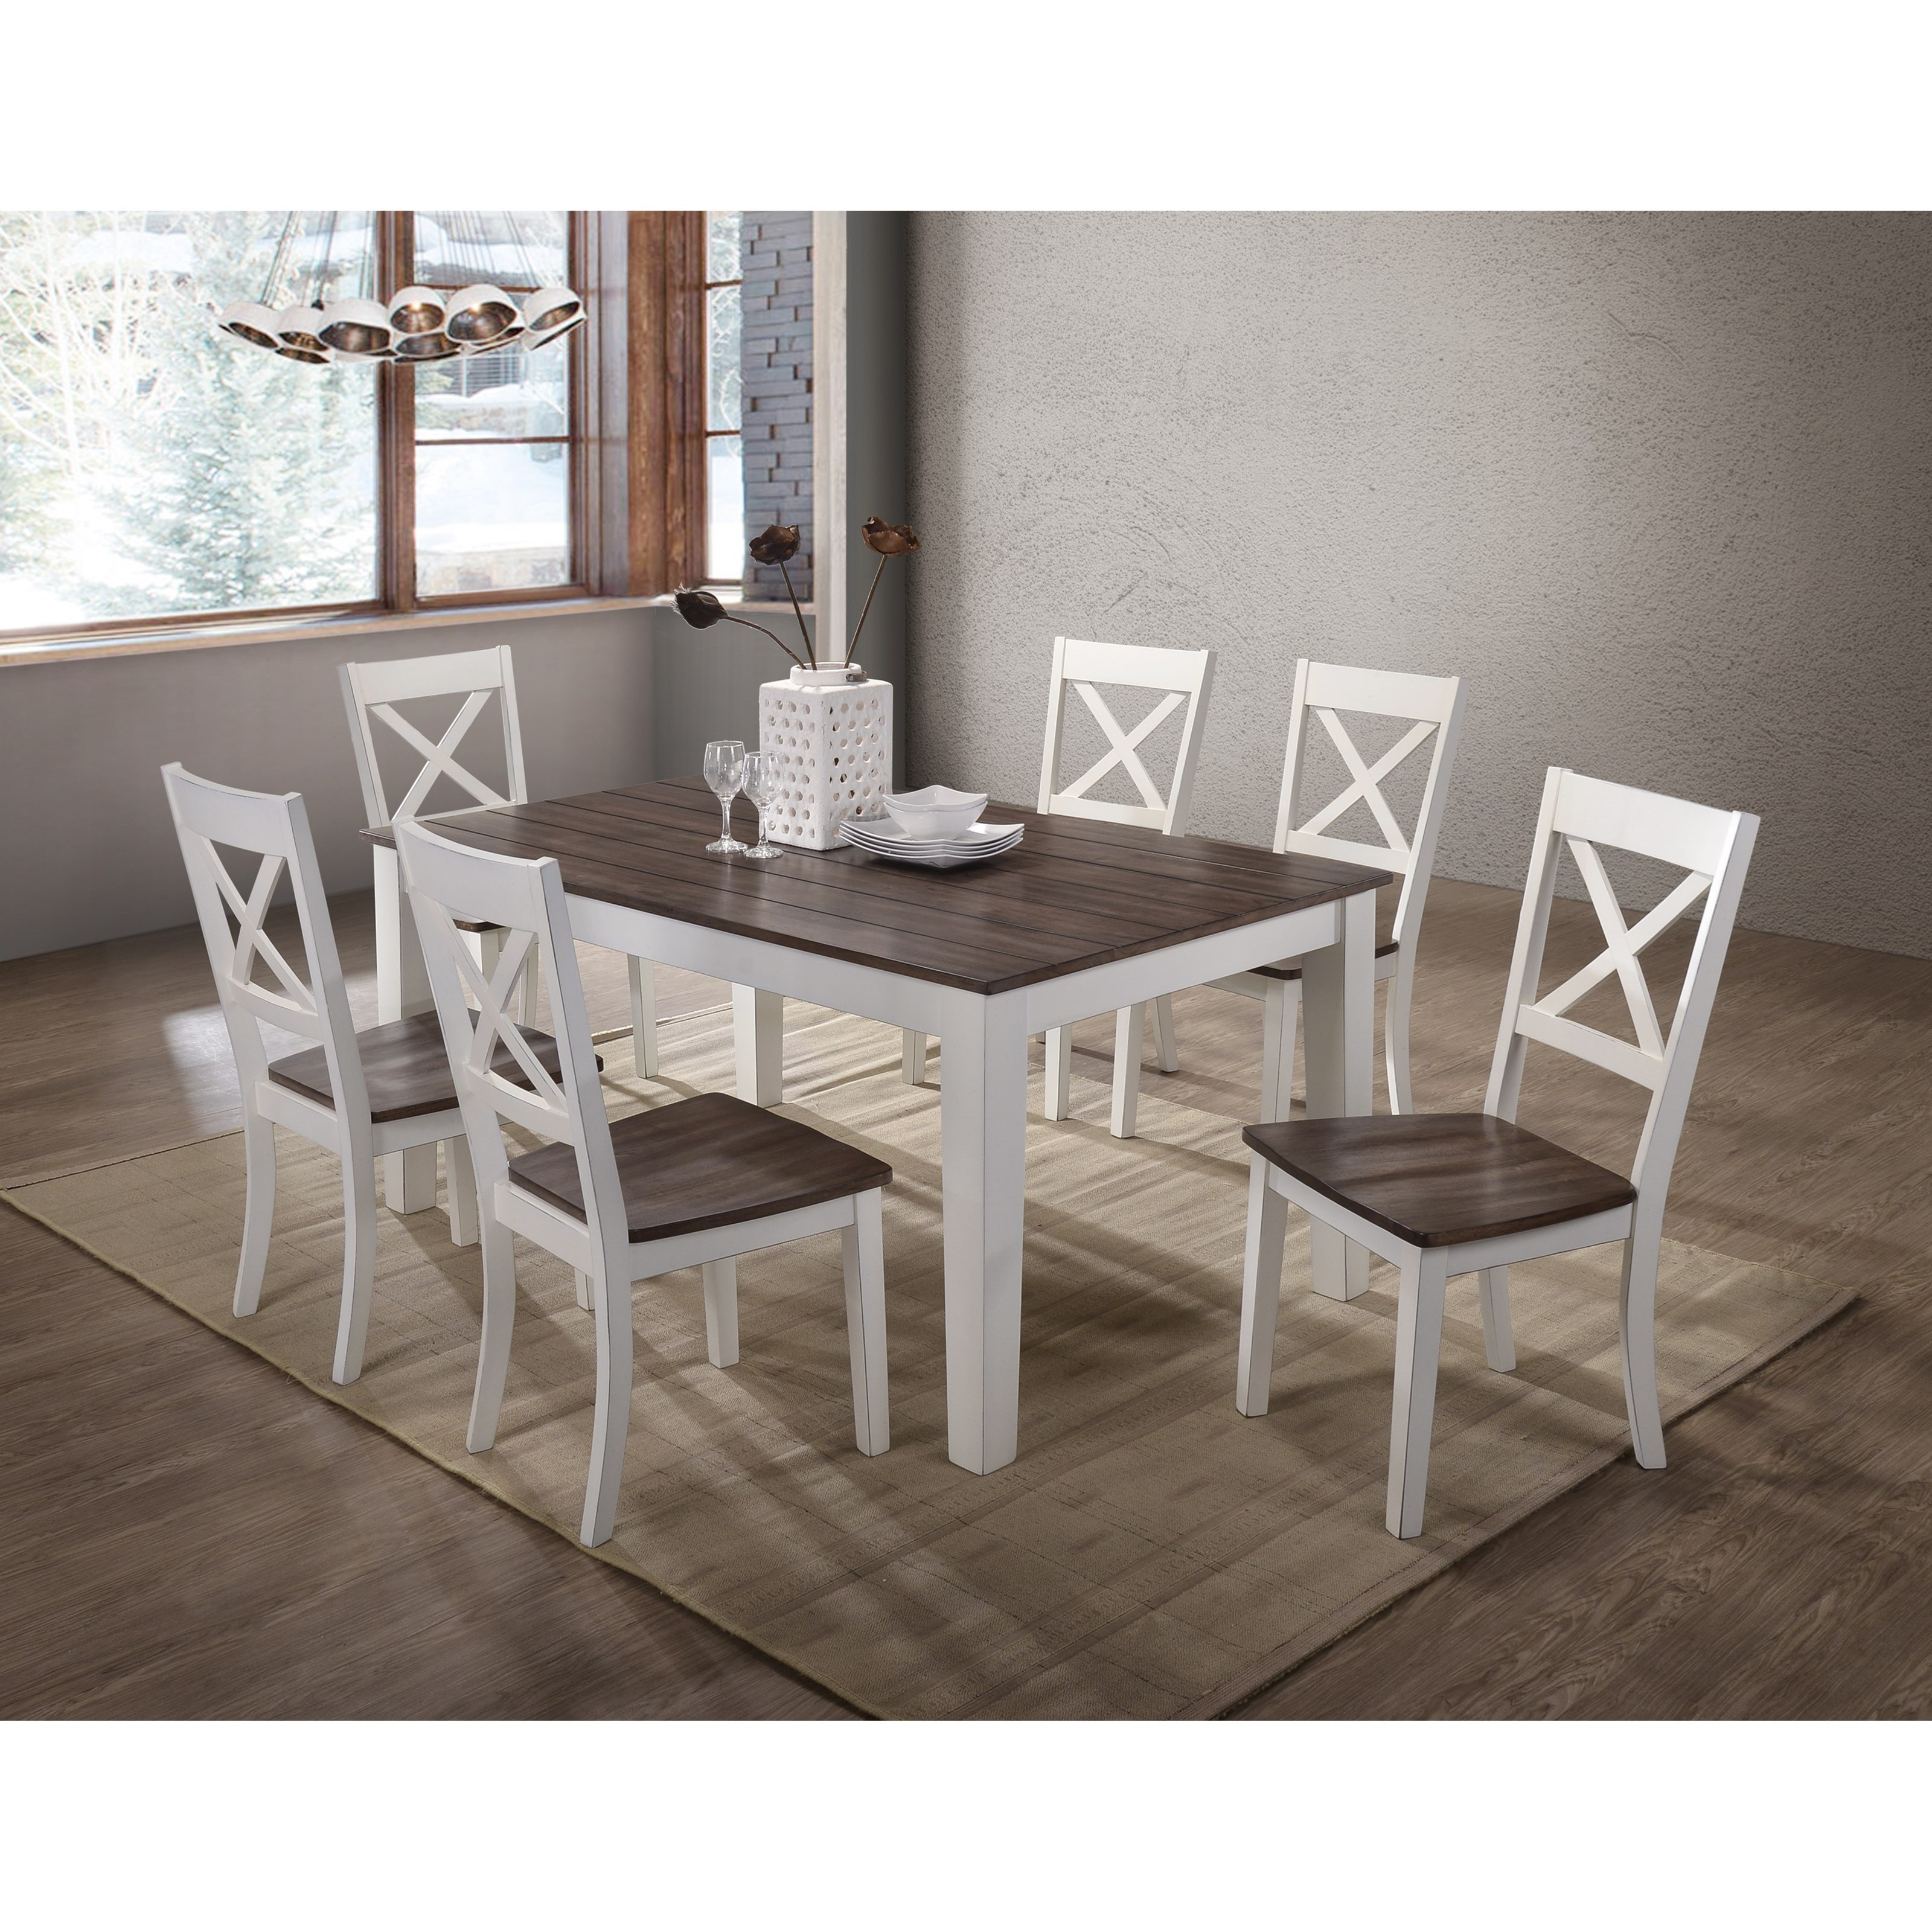 5057 7 Piece Table and Chair Set by Lane at Powell's Furniture and Mattress